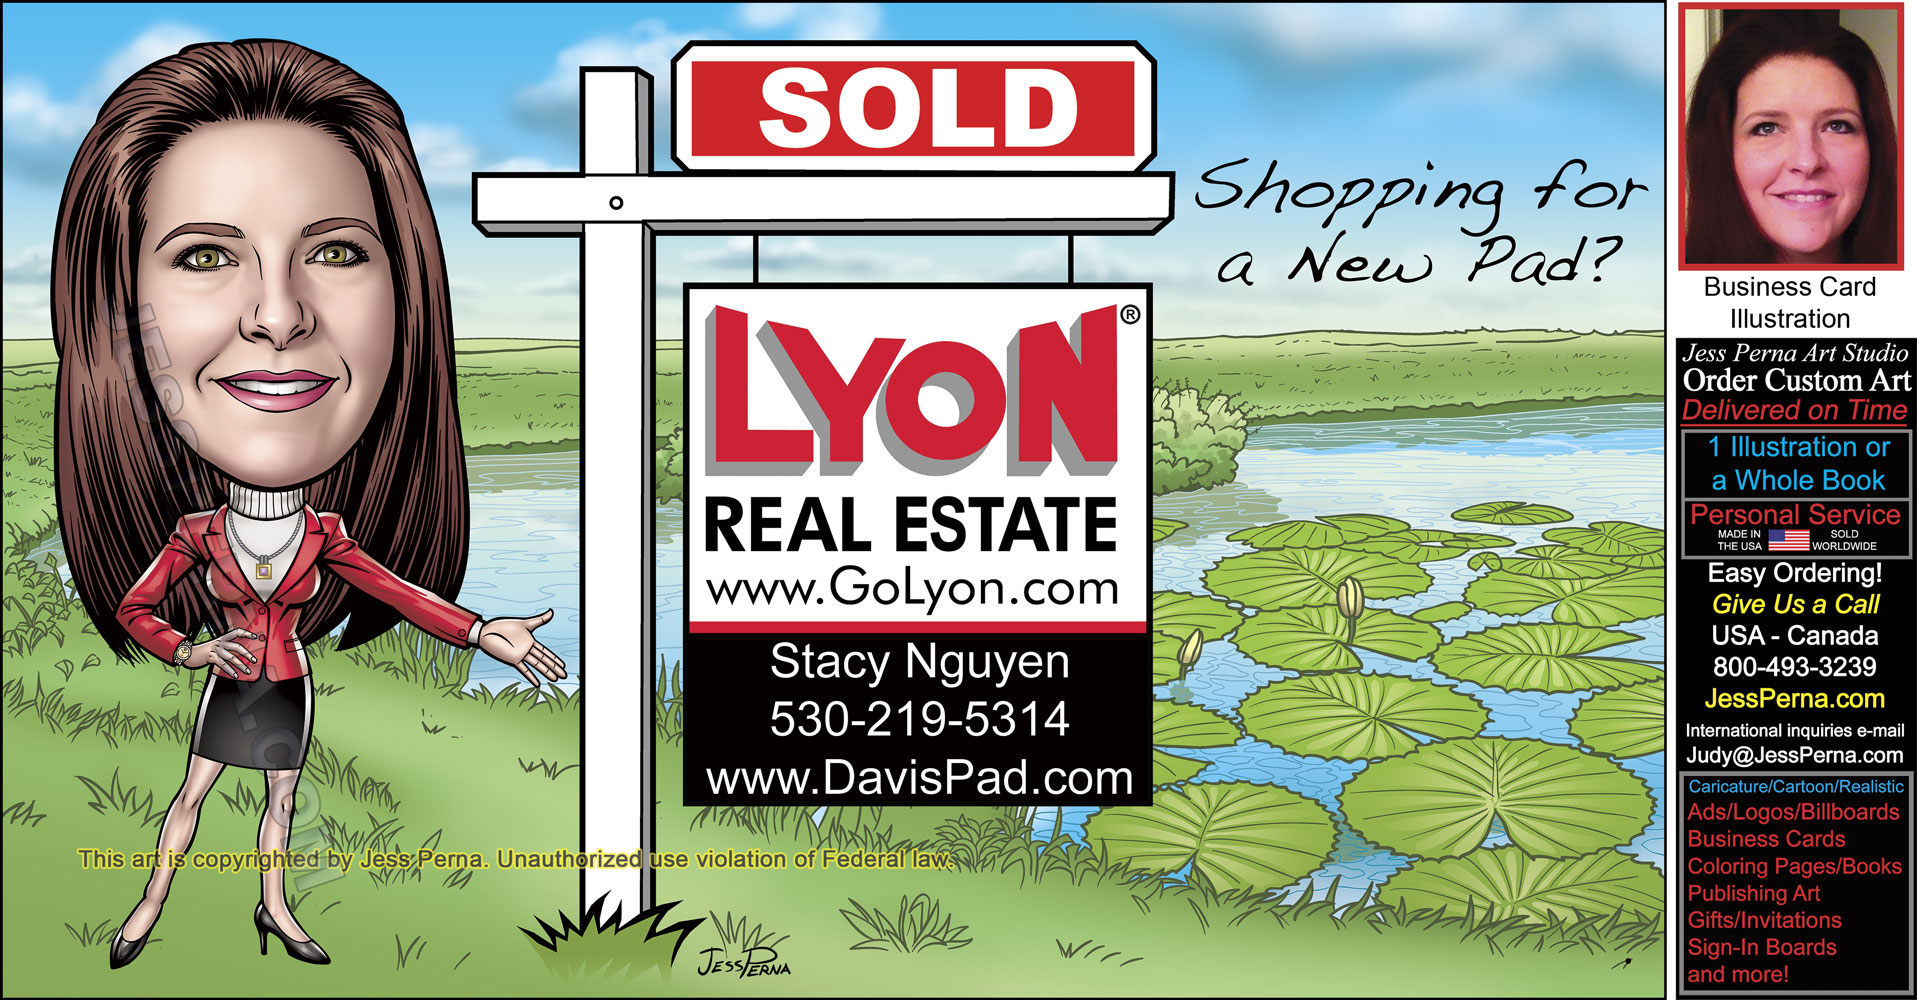 Real estate business cards and sold signs lyon real estate sold sign caricature ad reheart Image collections